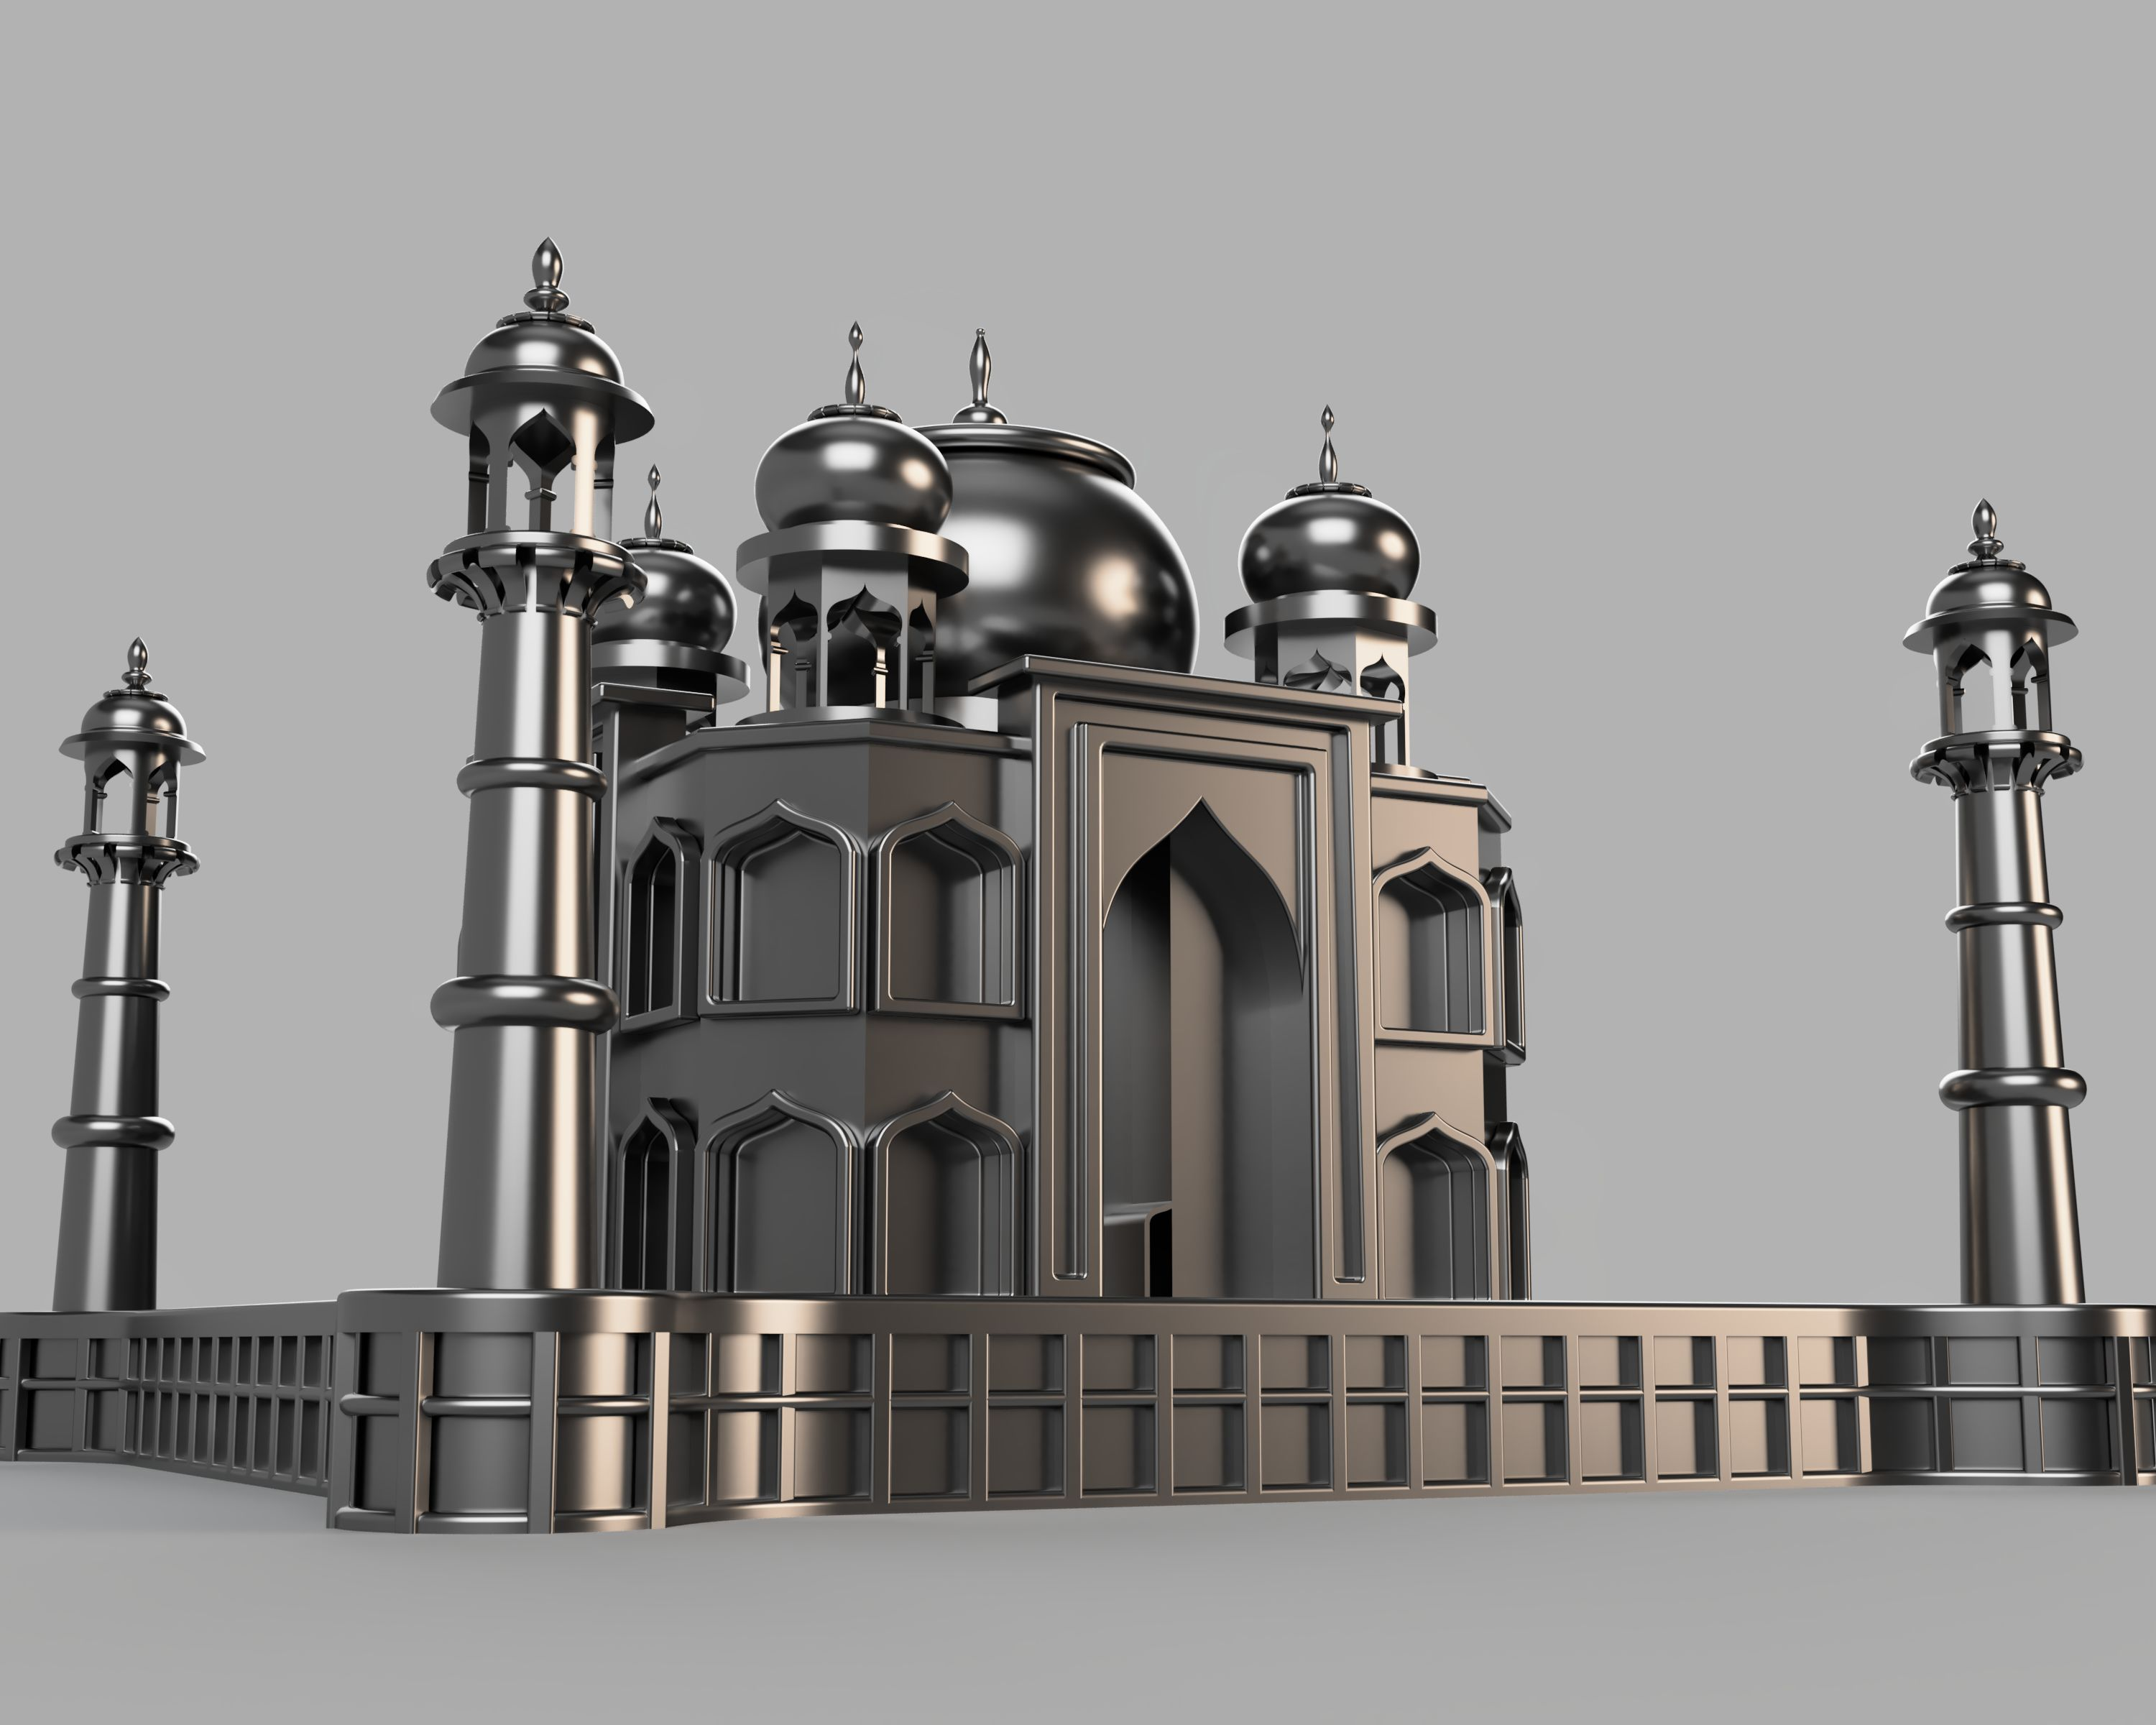 Tajmahal-fusion360-2020-may-14-08-35-03am-3500-3500